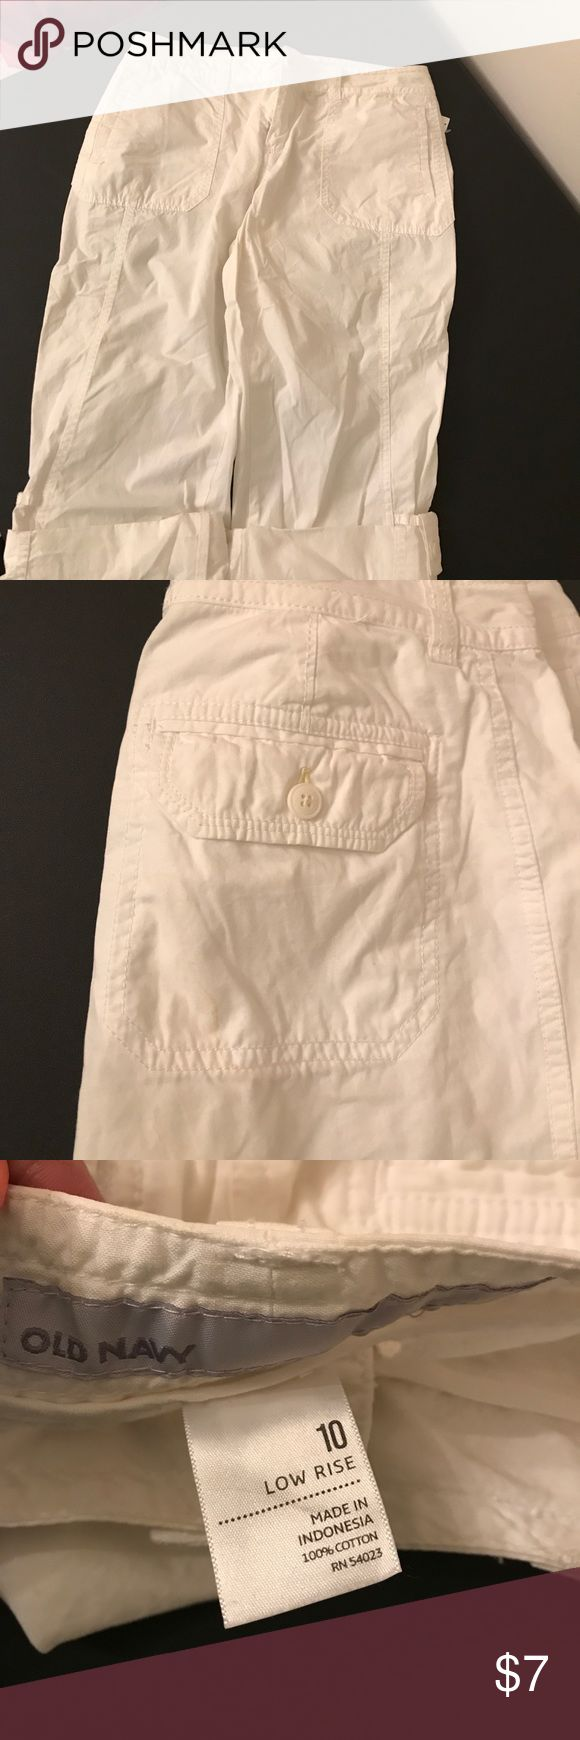 Old Navy capri cargo pants Low rise capris with button detail on the bottoms. Some yellowing due to storage (pictured) Old Navy Pants Capris